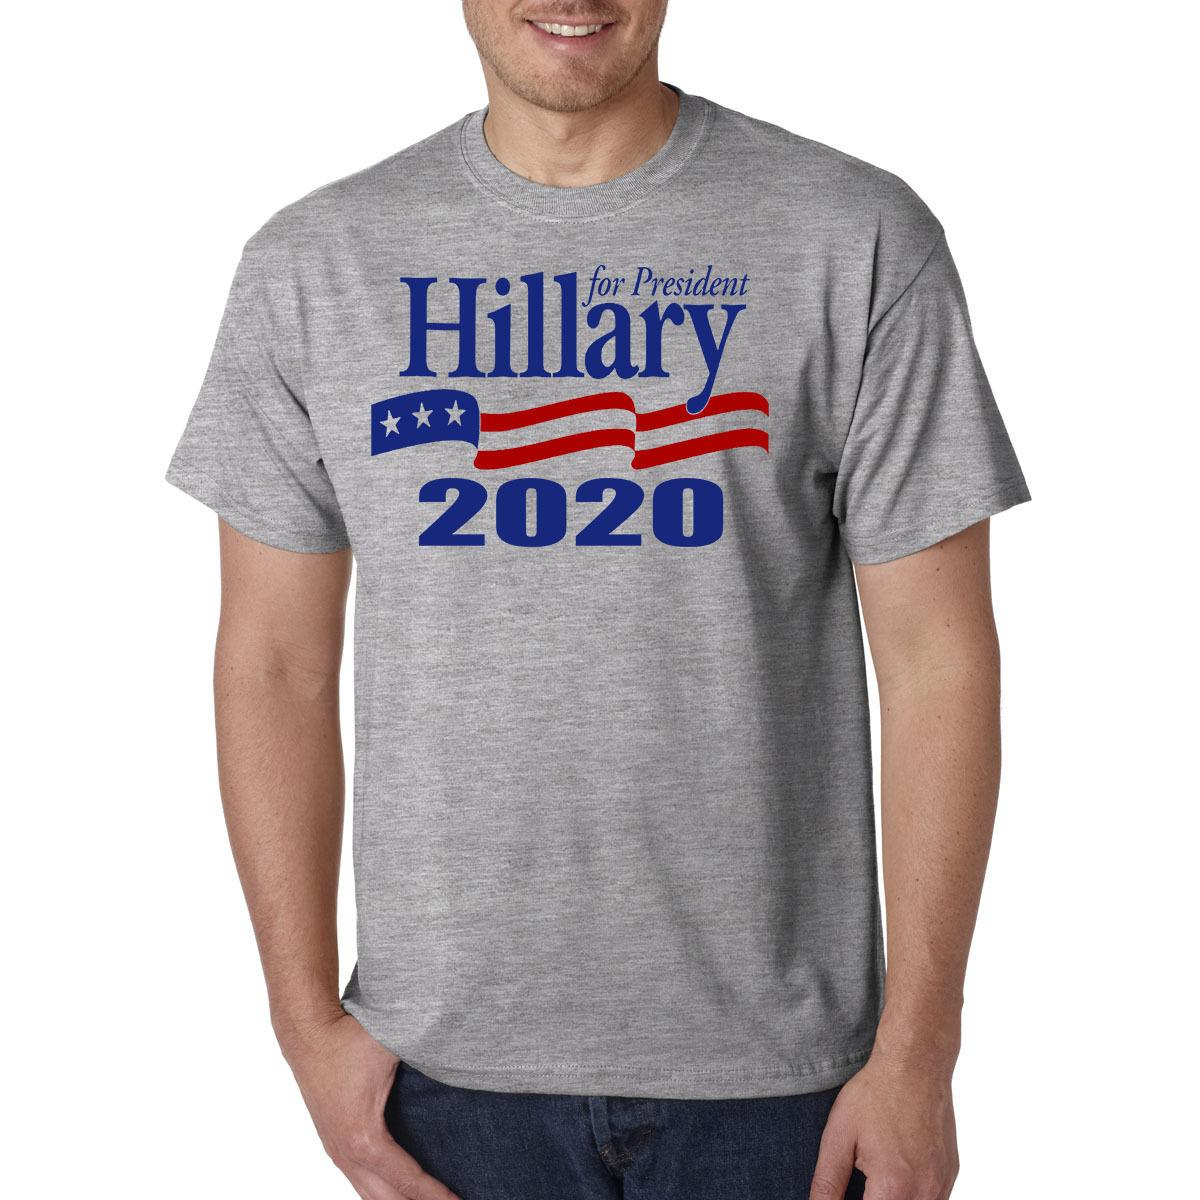 c4b19309a021 Hillary Clinton For President 2020 T-Shirt - Rematch Dump Donald ...